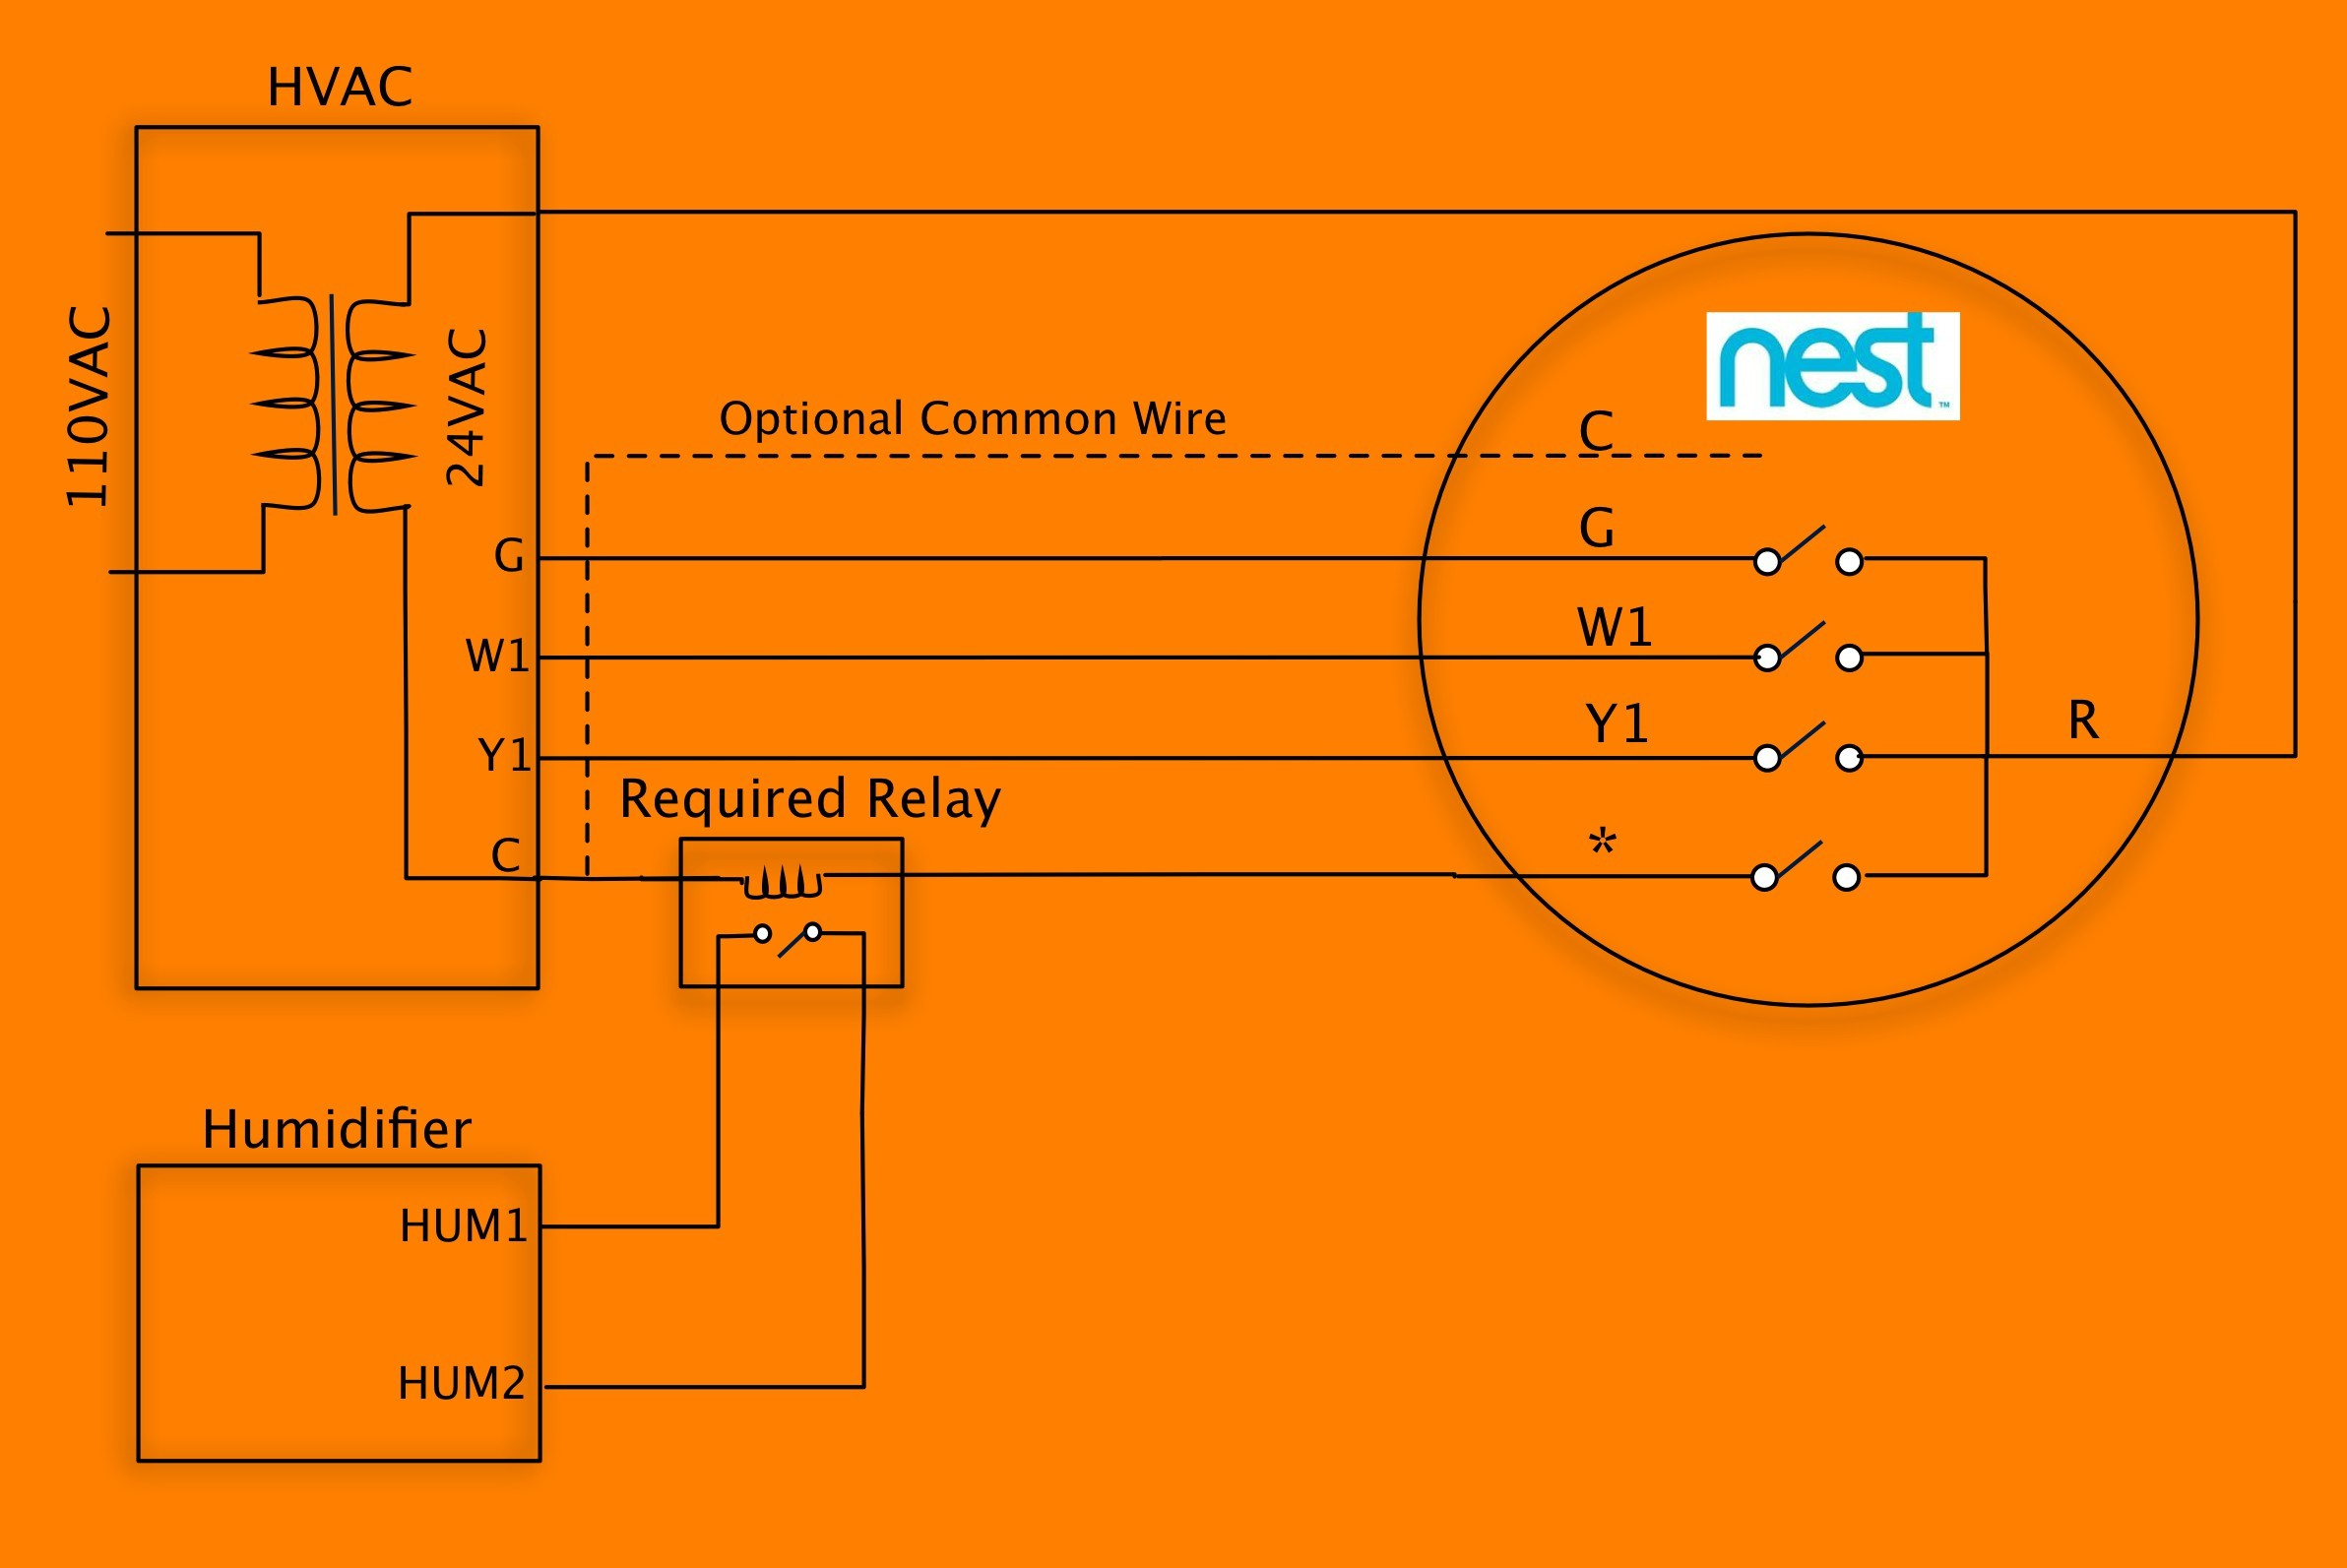 Nest thermostat wiring diagram awesome nest 3rd generation wiring nest thermostat wiring diagram awesome nest 3rd generation wiring diagram diagram of nest thermostat wiring diagram cheapraybanclubmaster Choice Image